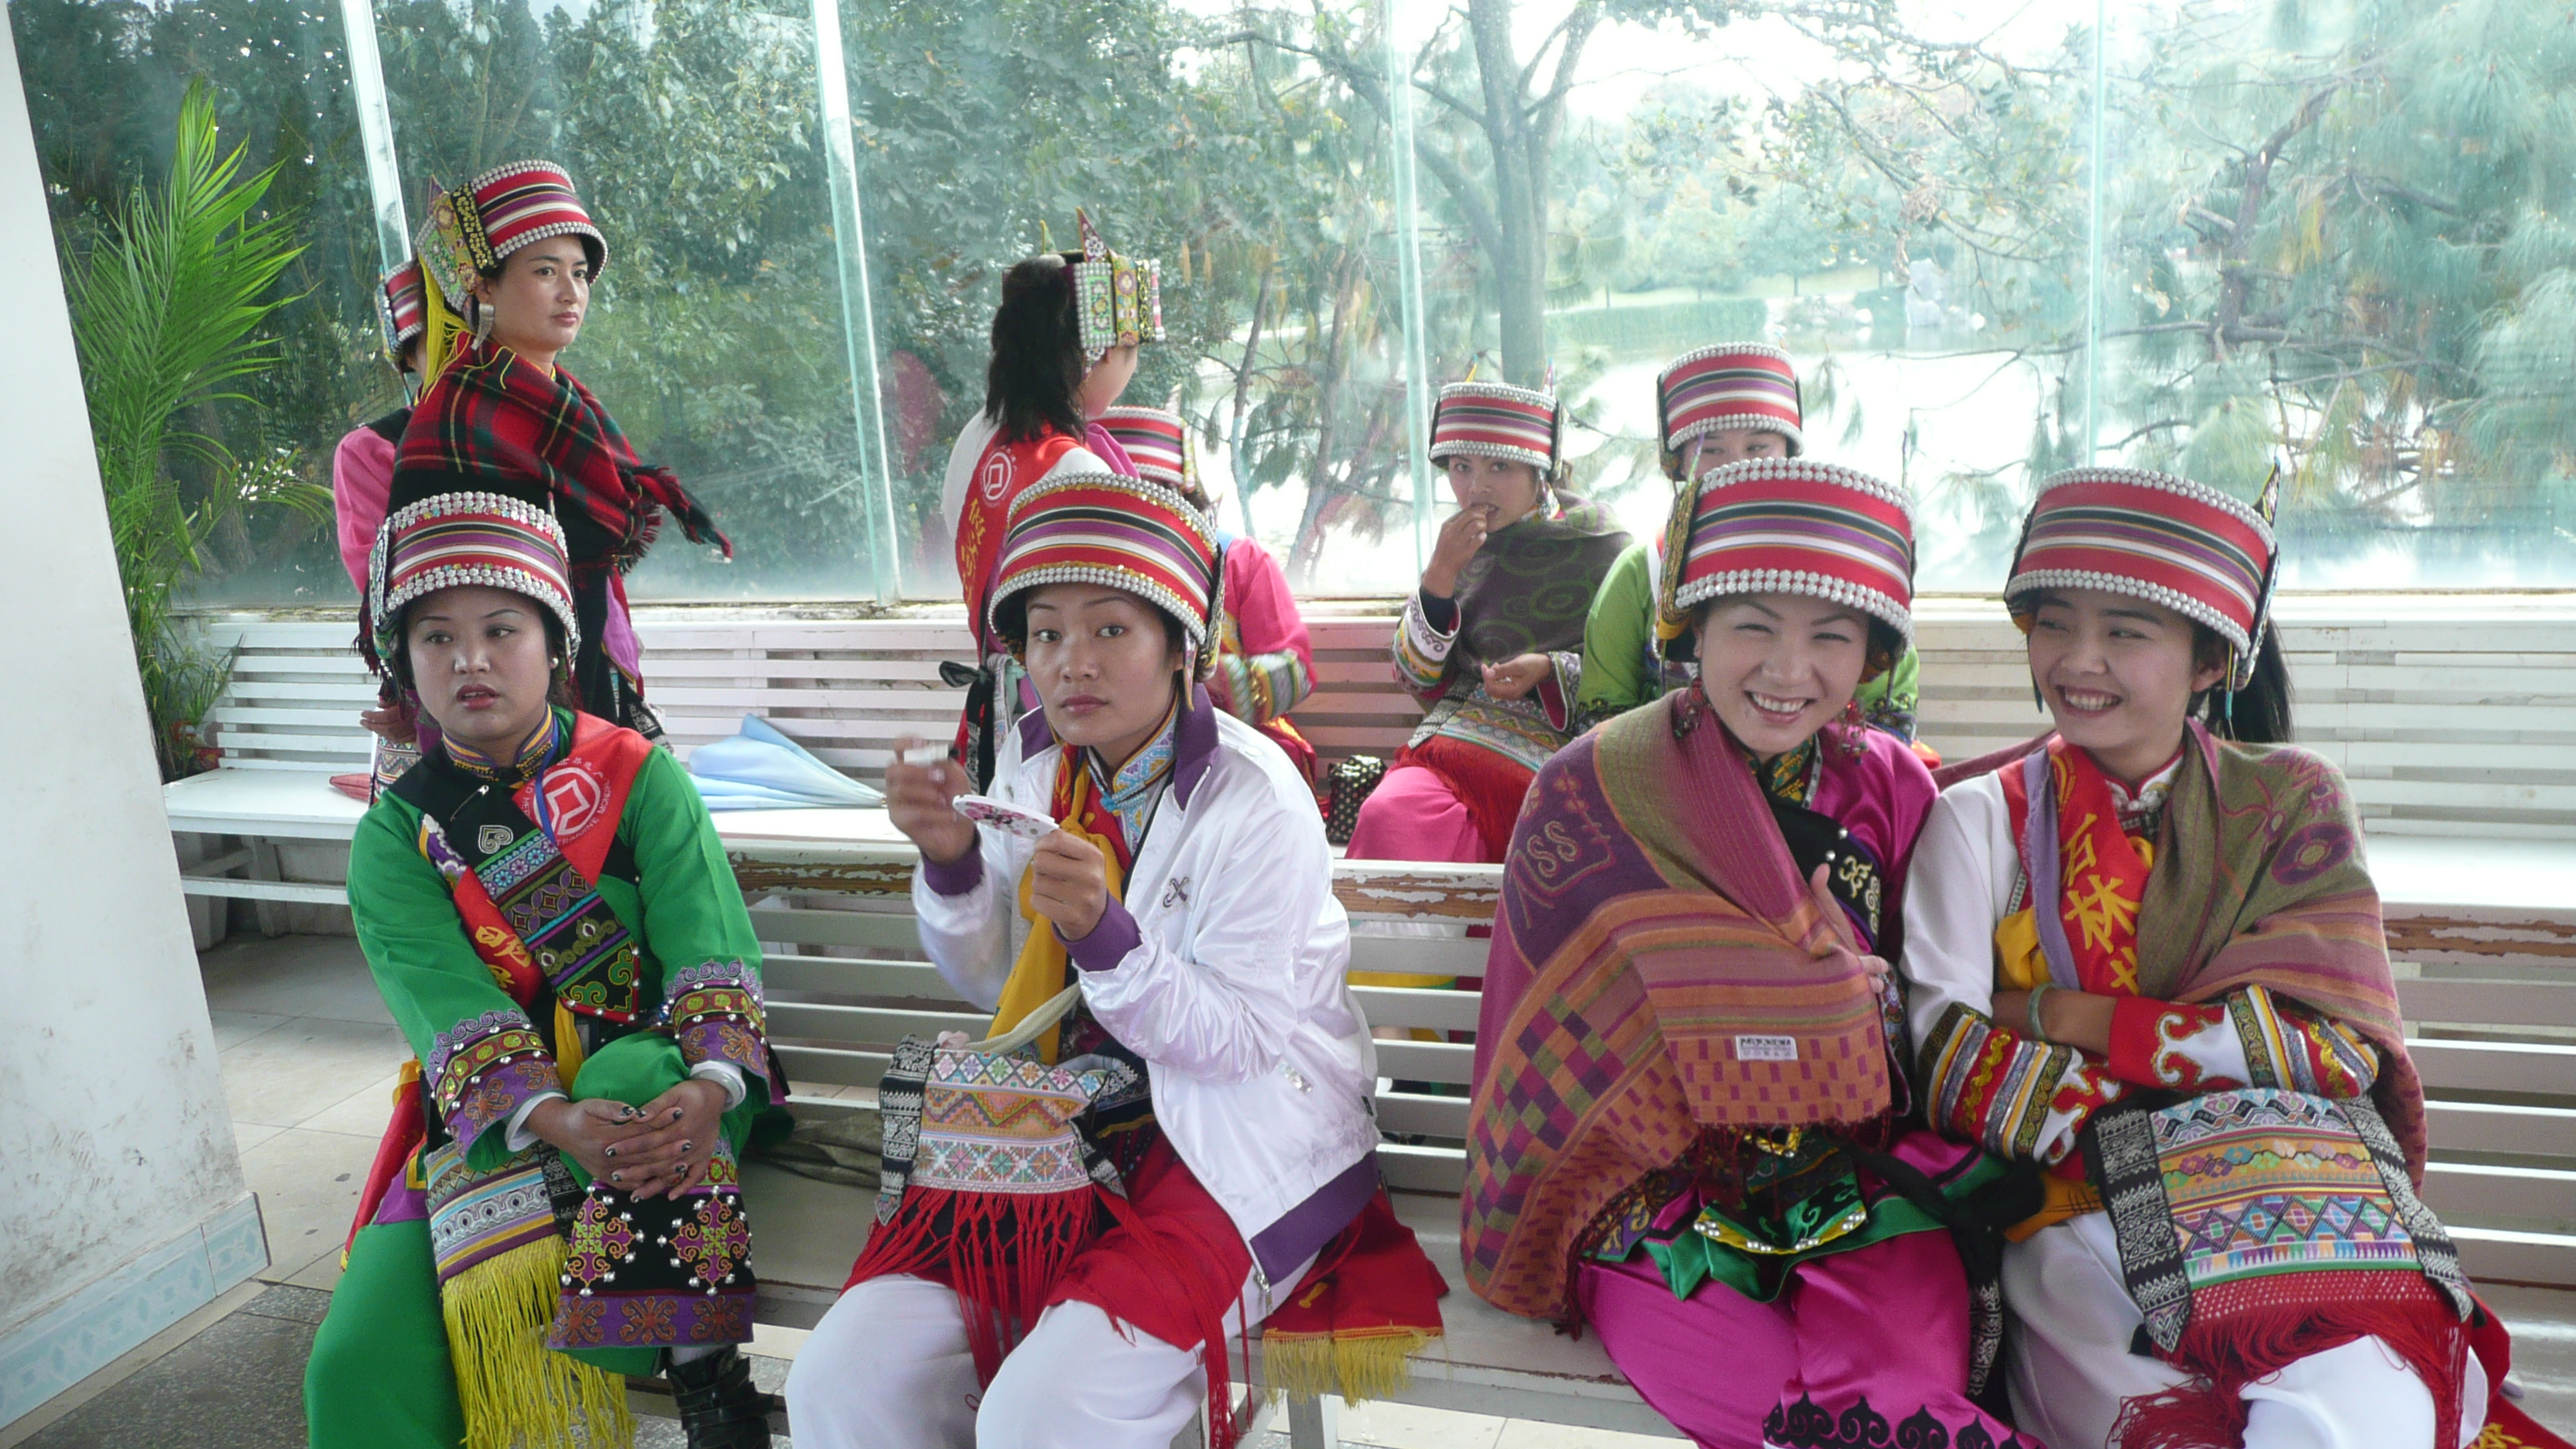 The Chinese Qiang Ethnic Minority, Qiang People in China